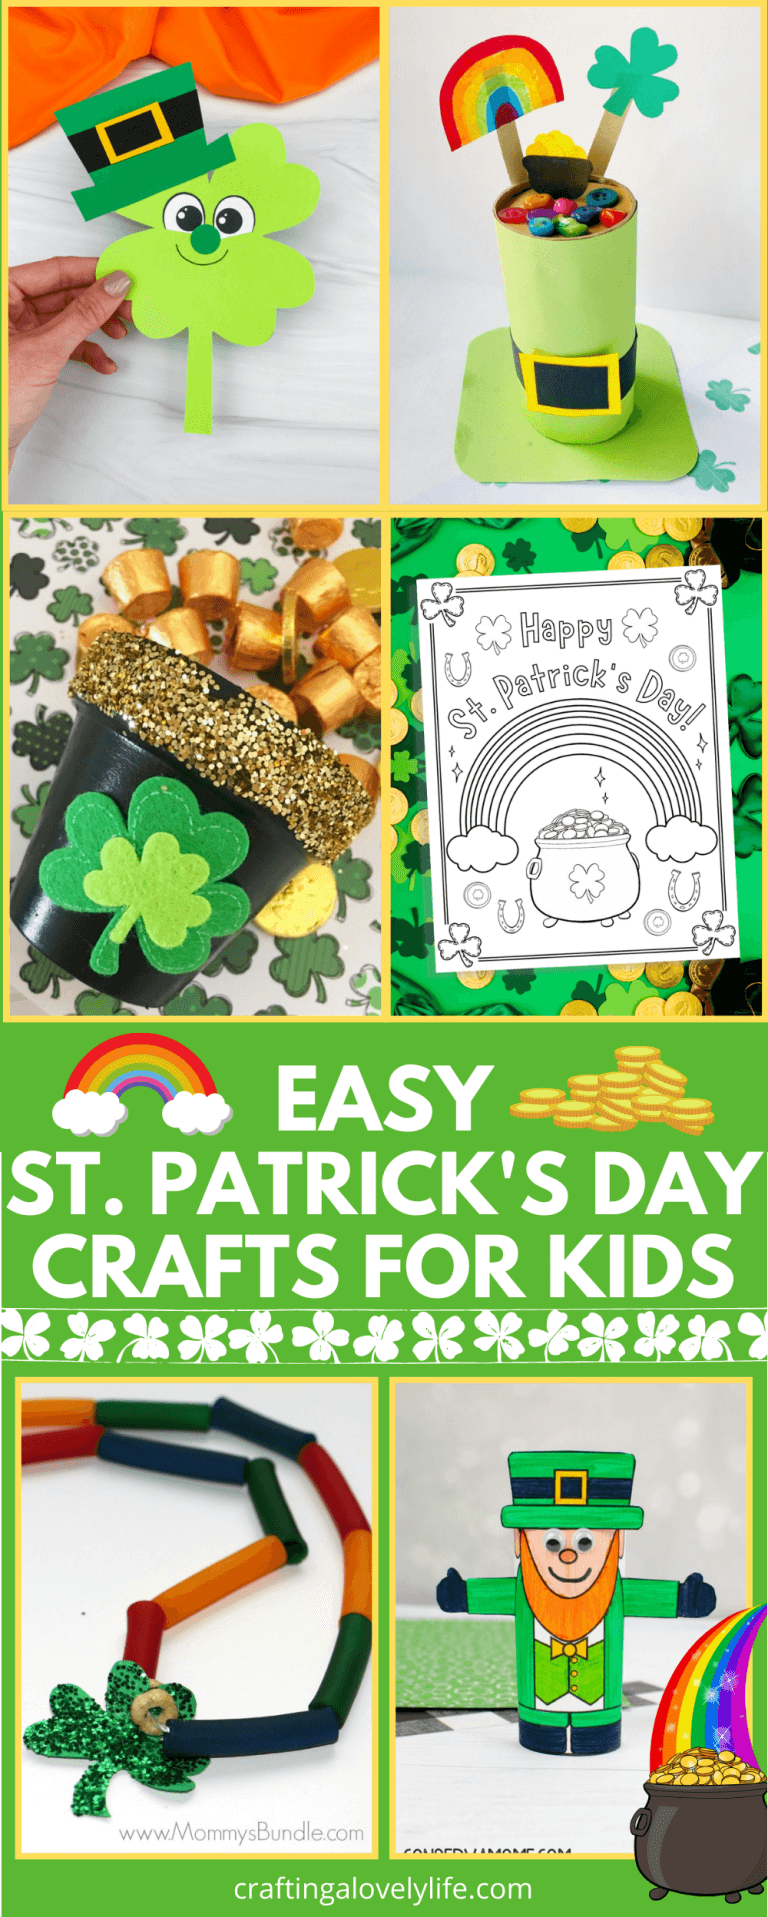 St. Patrick's Day Craft Ideas For Kids